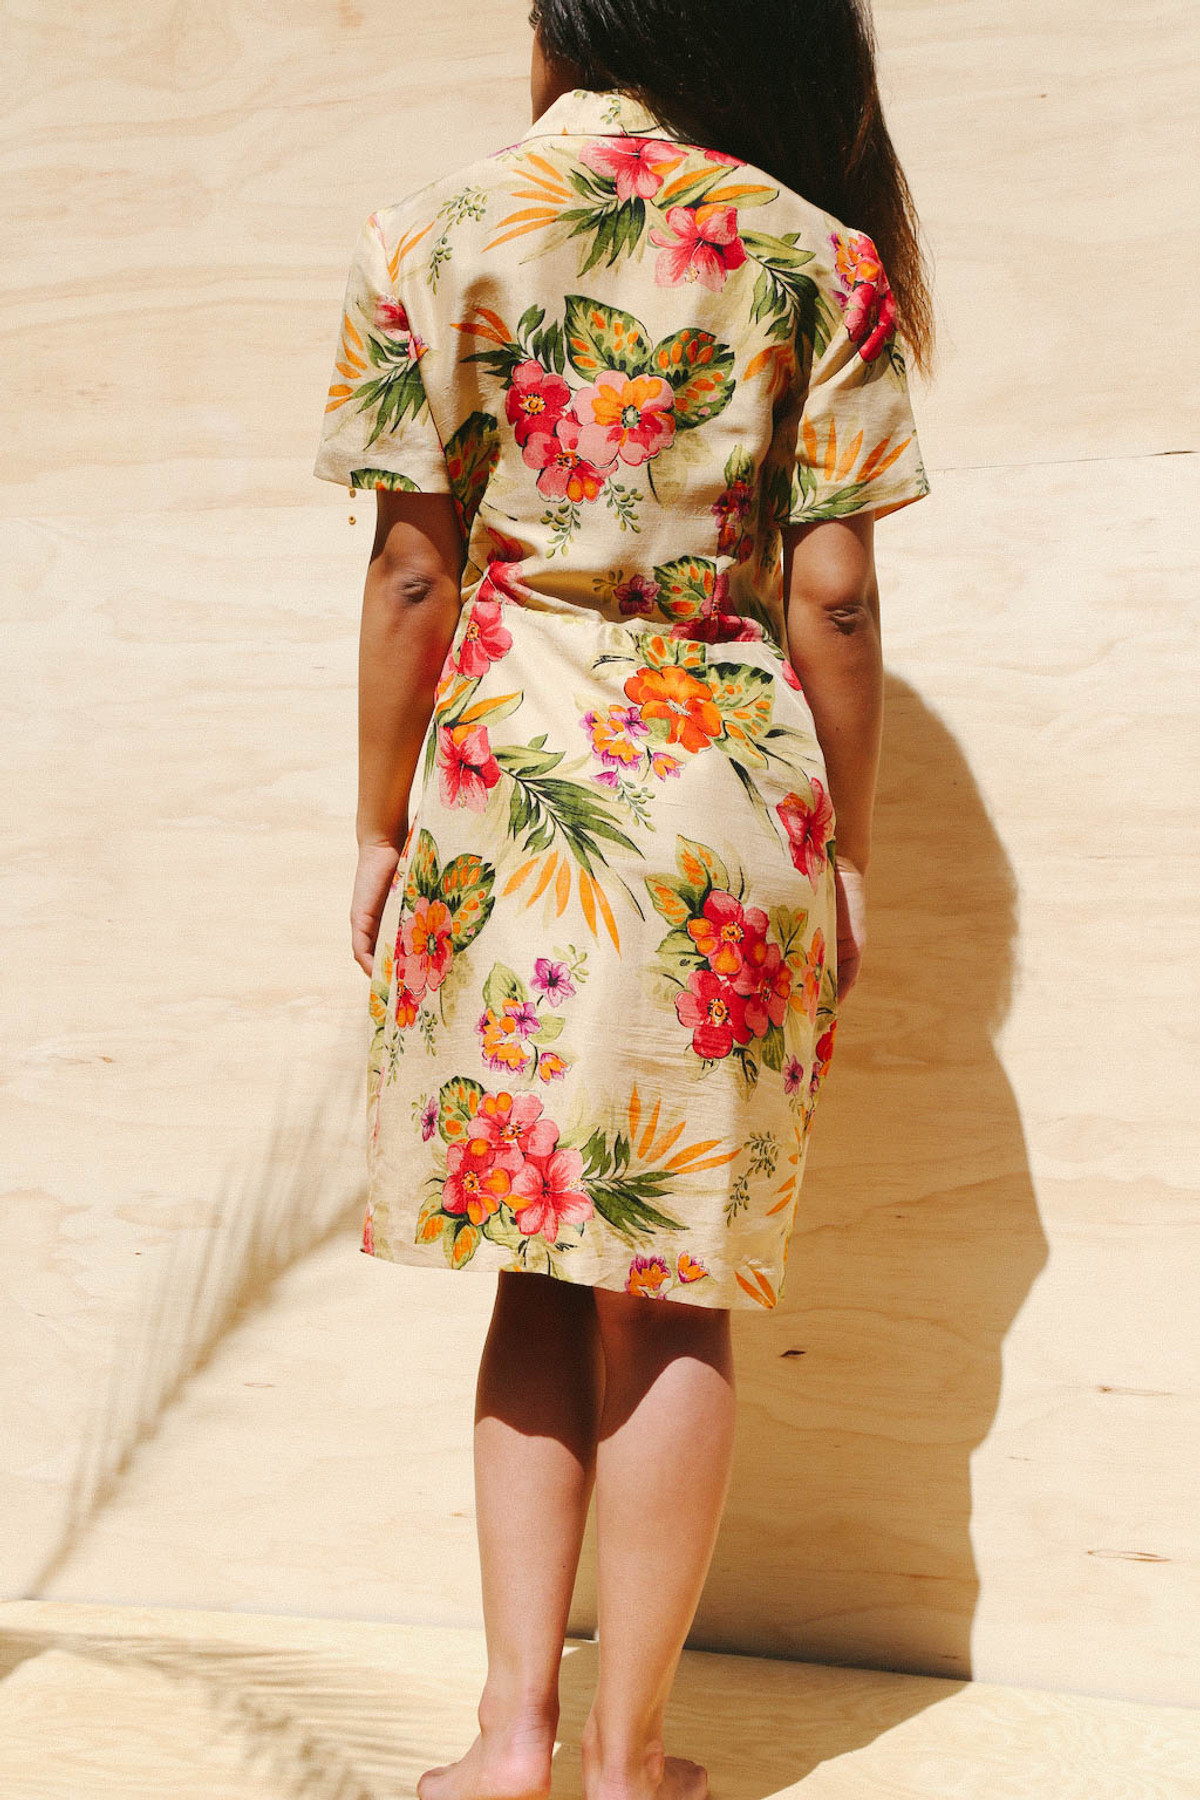 Barrie Pace Dress